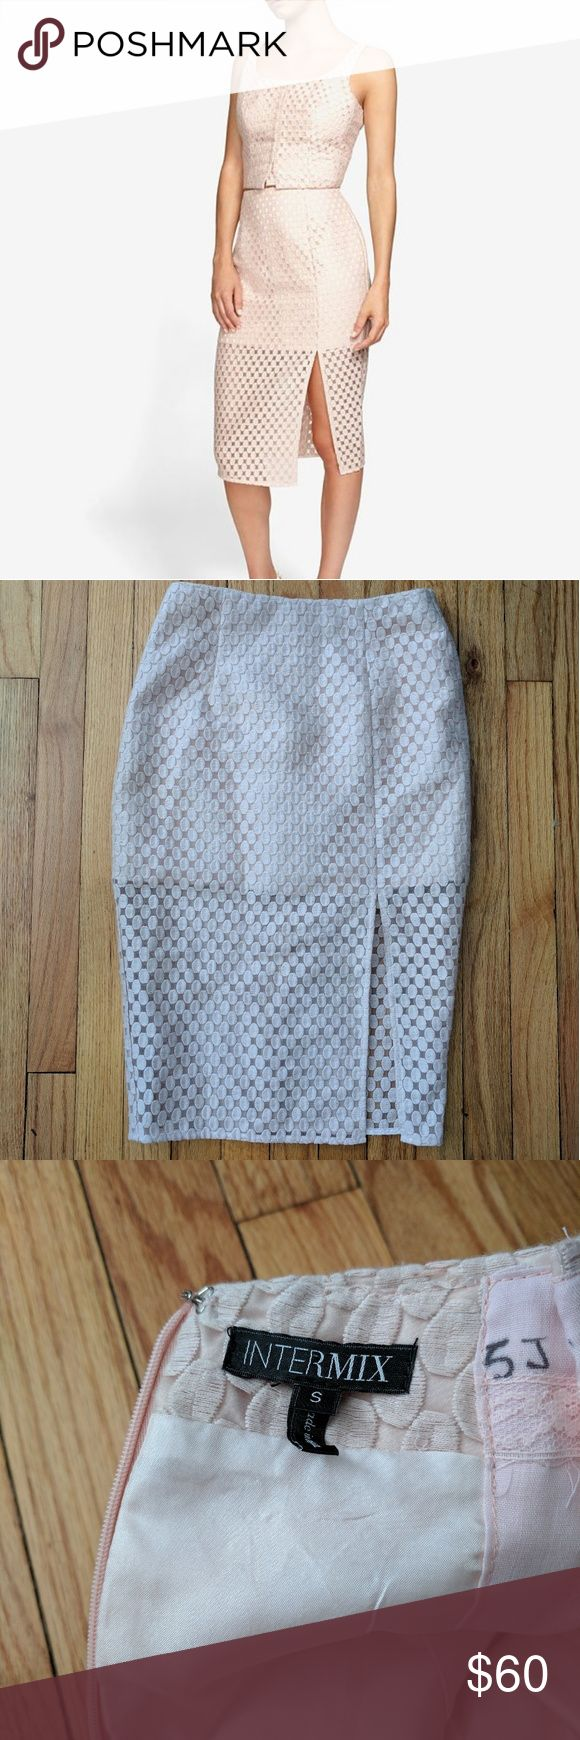 "Intermix Embroidered lace skirt and crop top Blush pink pencil skirt and crop top matching set with embroidered dot pattern. Skirt is lined about halfway down and the rest is sheer. Skirt zips up the back. Top fastens with hook and eyes in the front. Skirt length 36"" and waist 13.5"" across. Top about 15.5"" shoulder to hem and bust 16.5"" across. Condition is good, some loose threads here and there. Stock photo is true to color. Intermix Dresses"